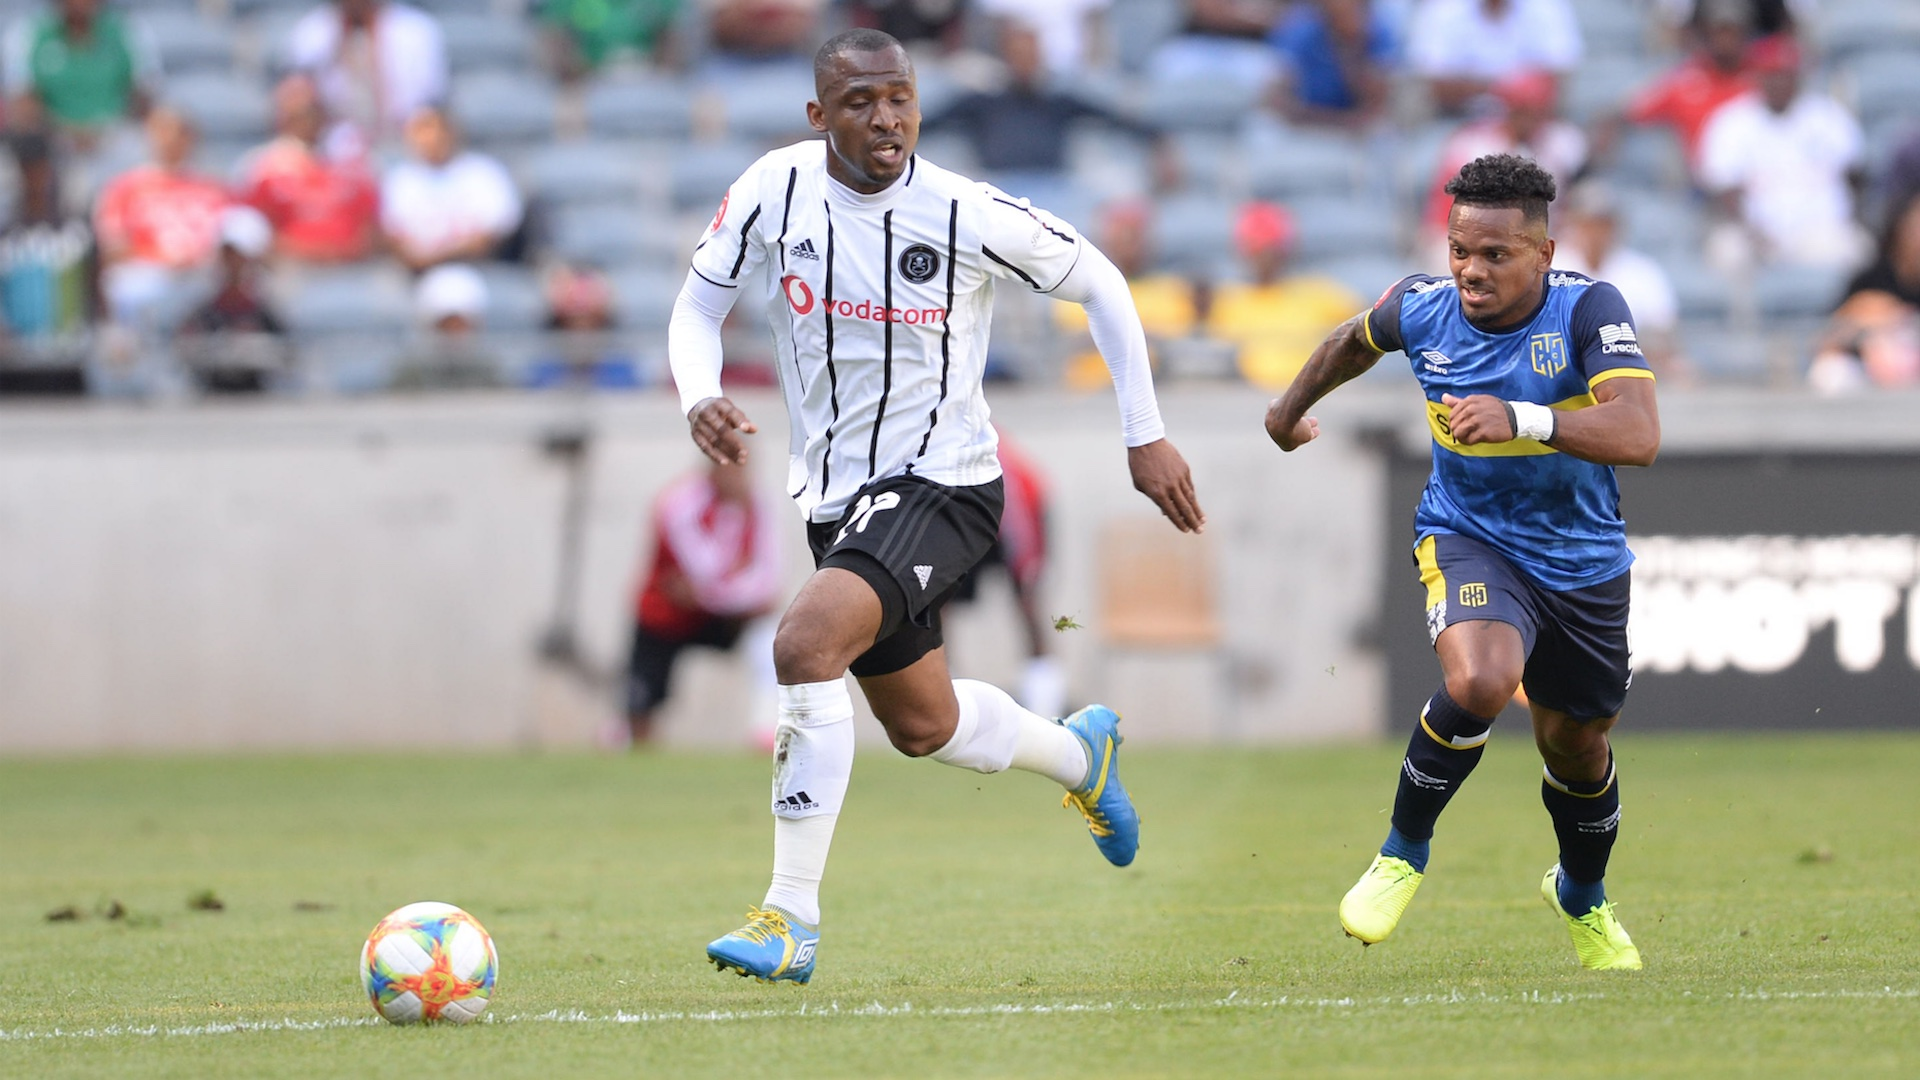 Absa Premiership | Orlando Pirates v Cape Town City | Goals galore